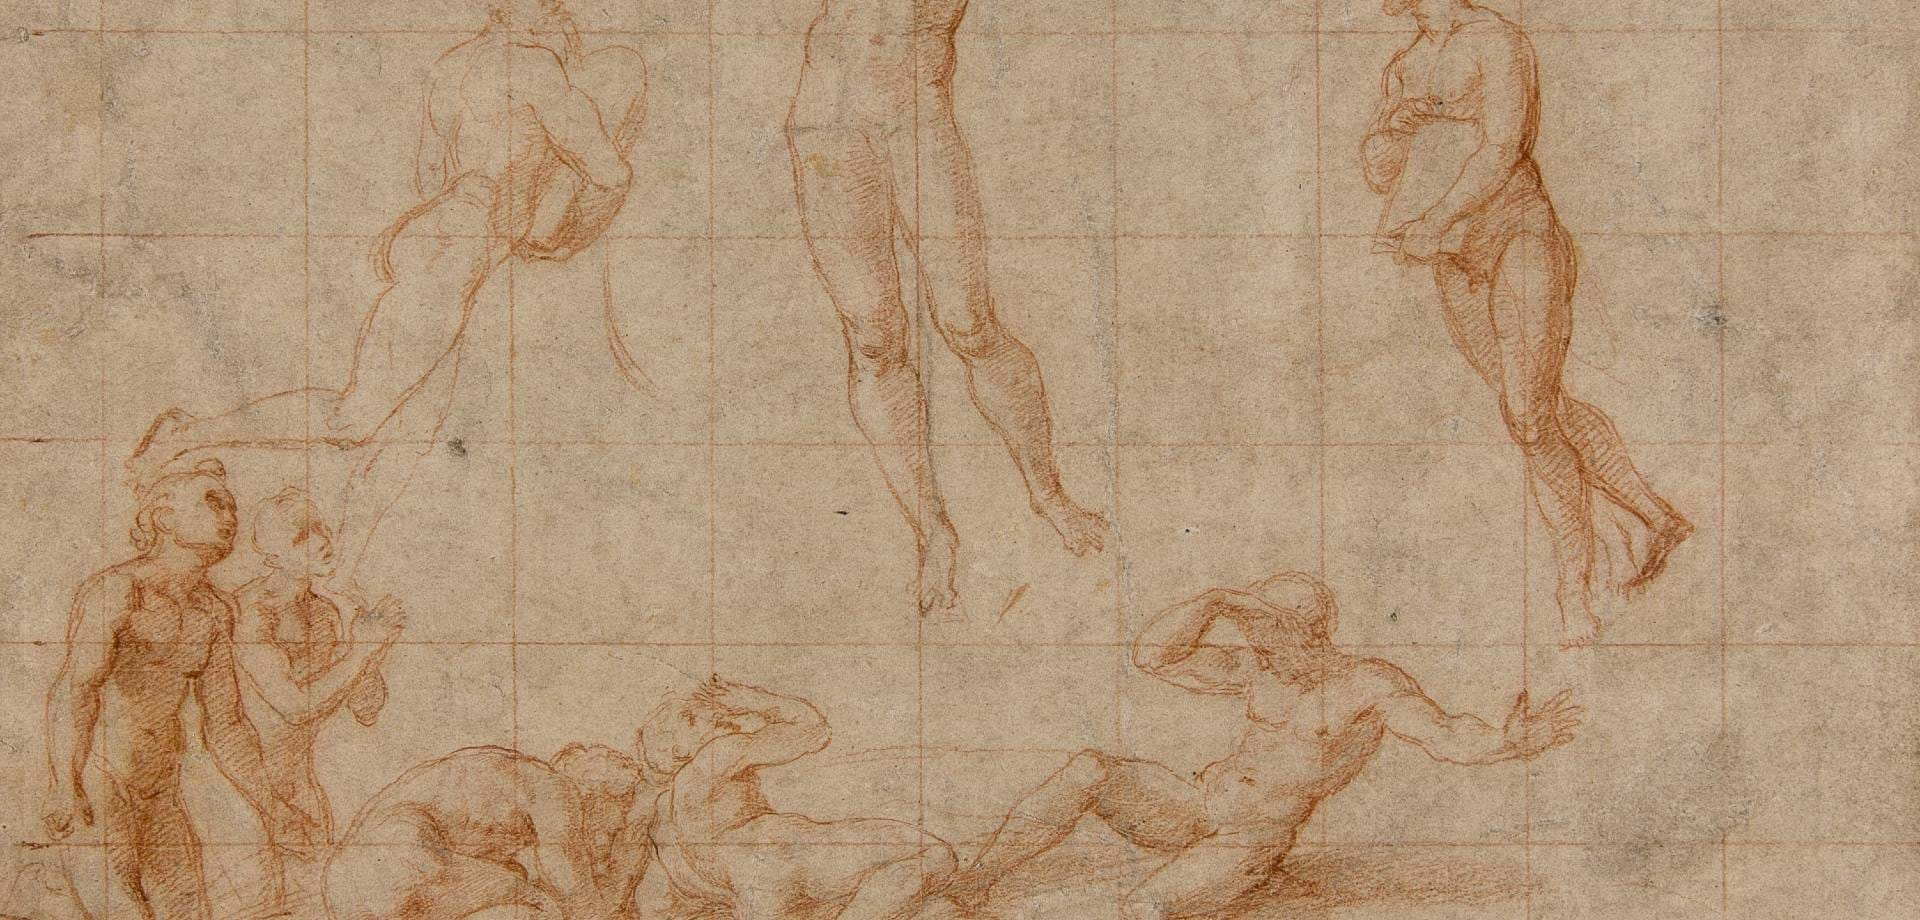 Study for the Transfiguration